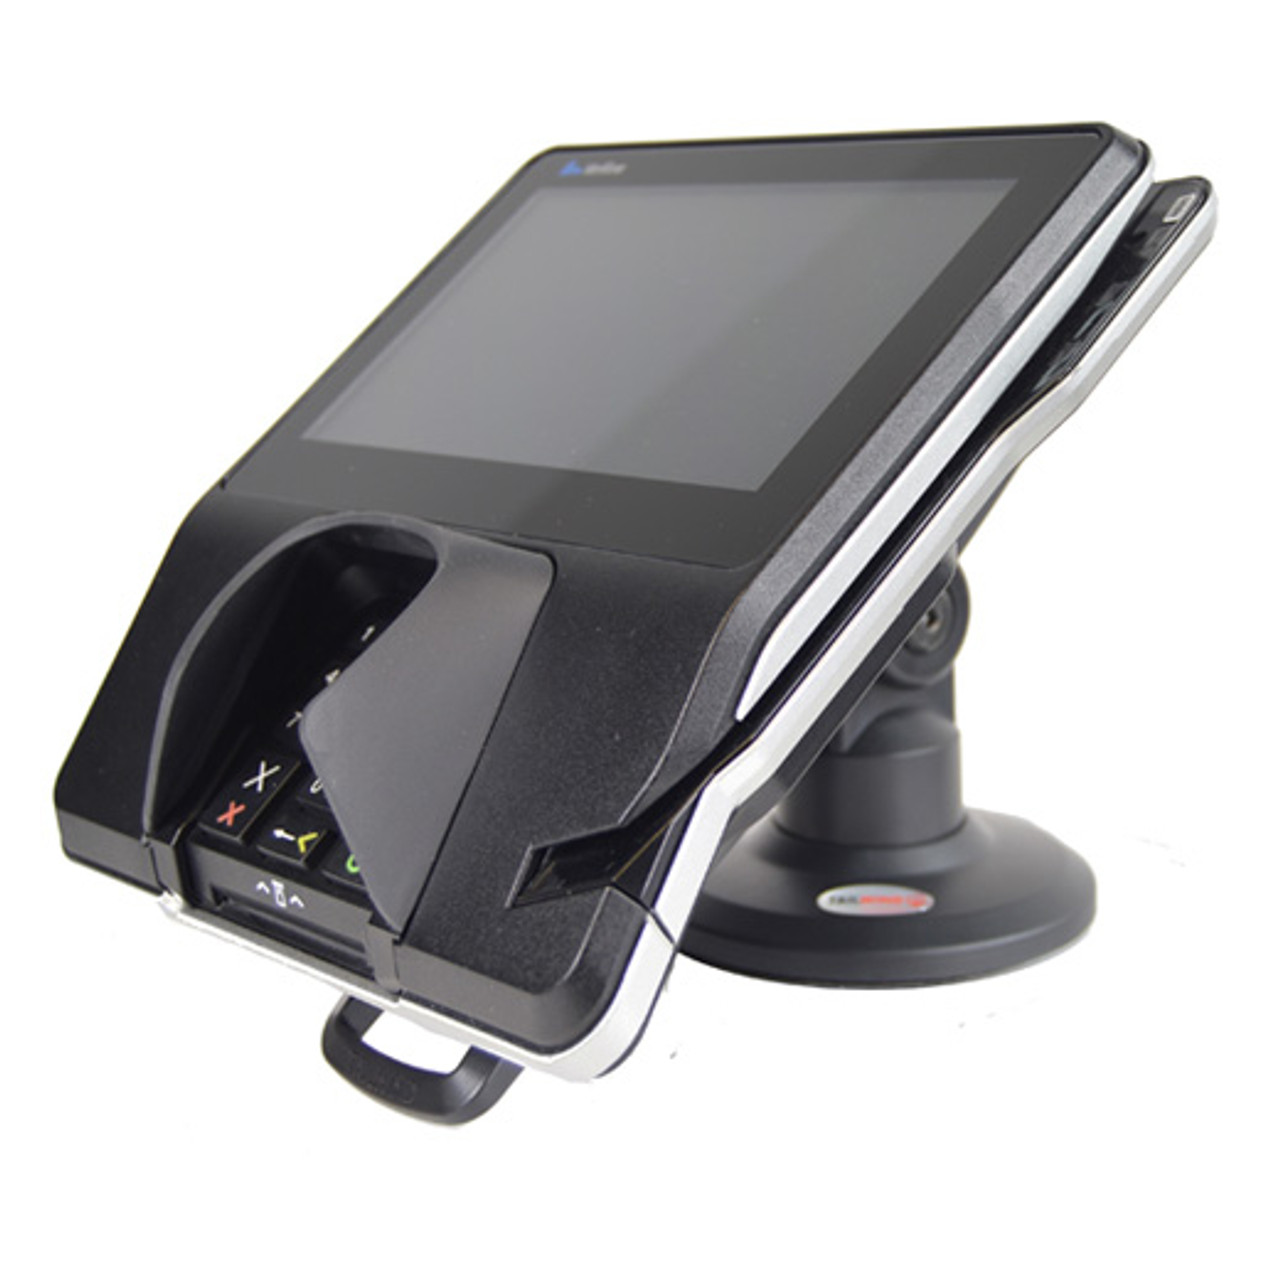 Verifone MX915/MX925 and M400 Stand 3-Inch FlexiPole FirstBase Compact